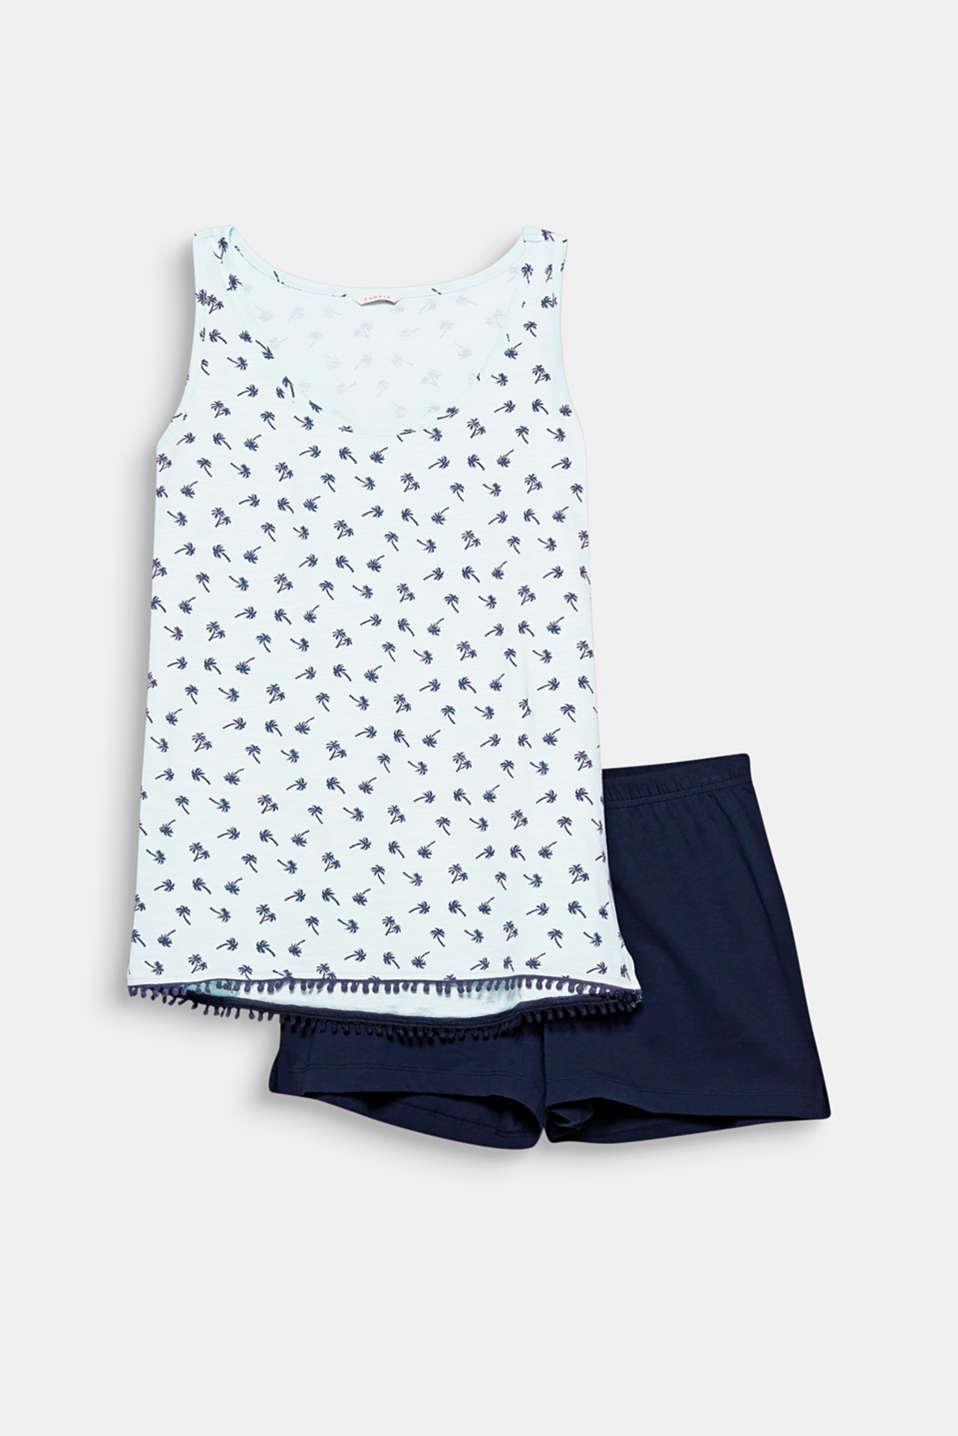 De look van deze pyjama met een gedessineerde slub jersey top en effen short is superzomers.